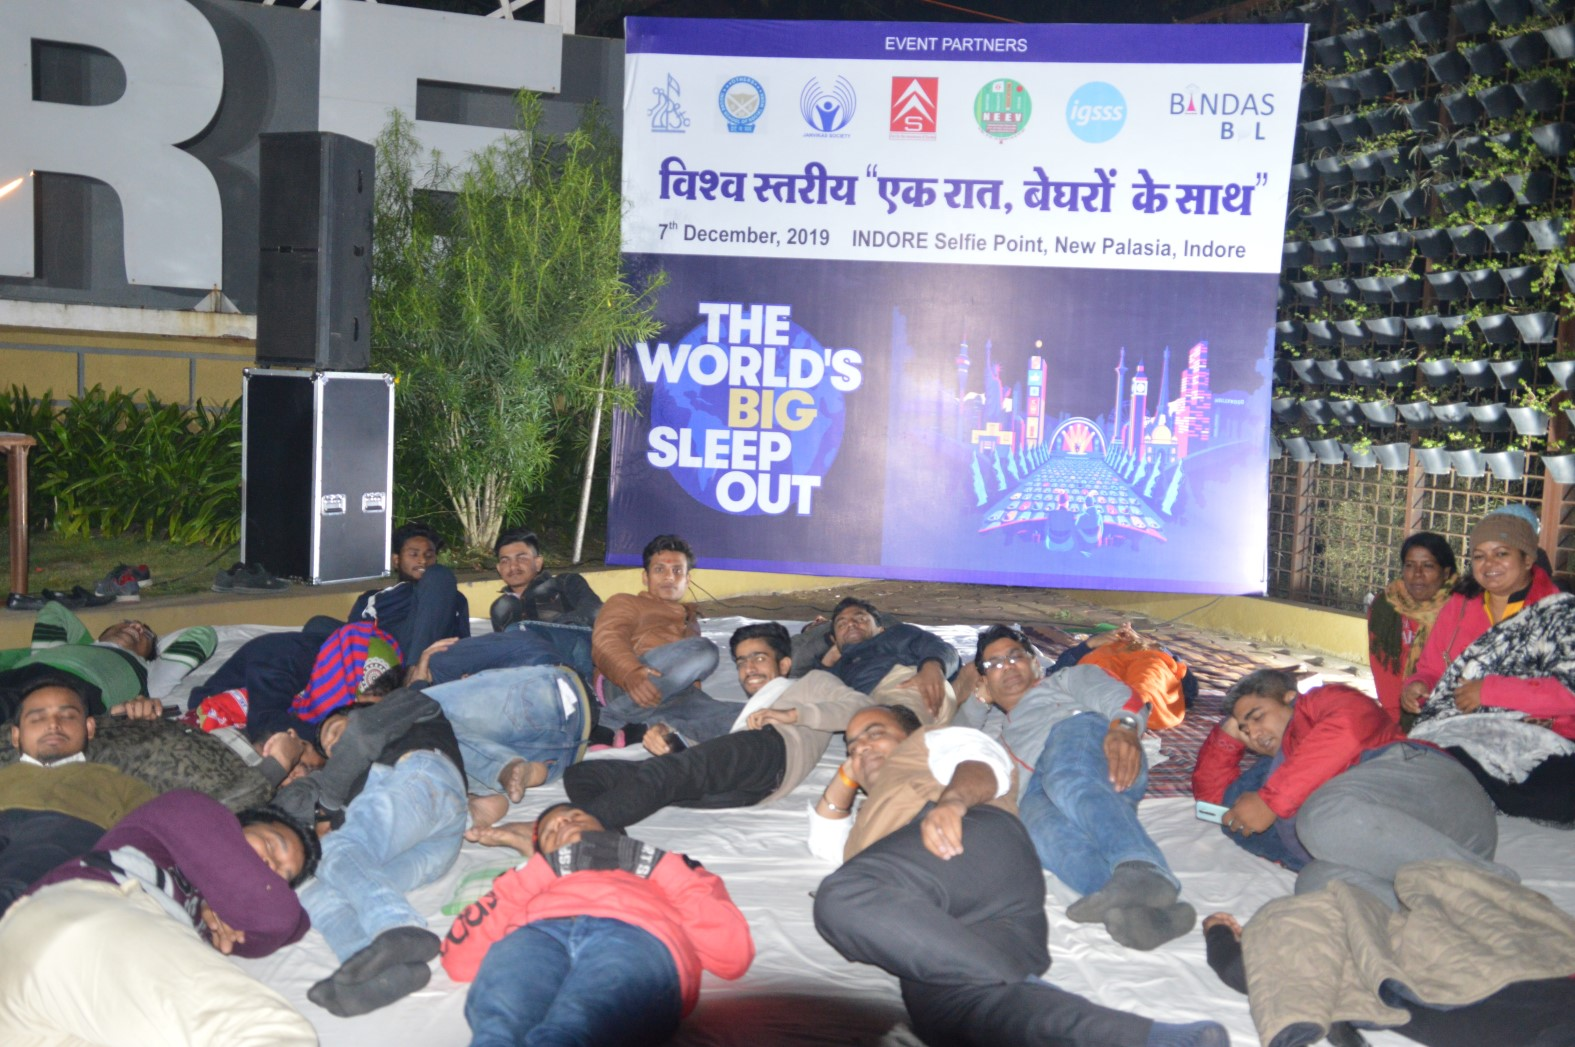 The World's Big Sleep Out Event